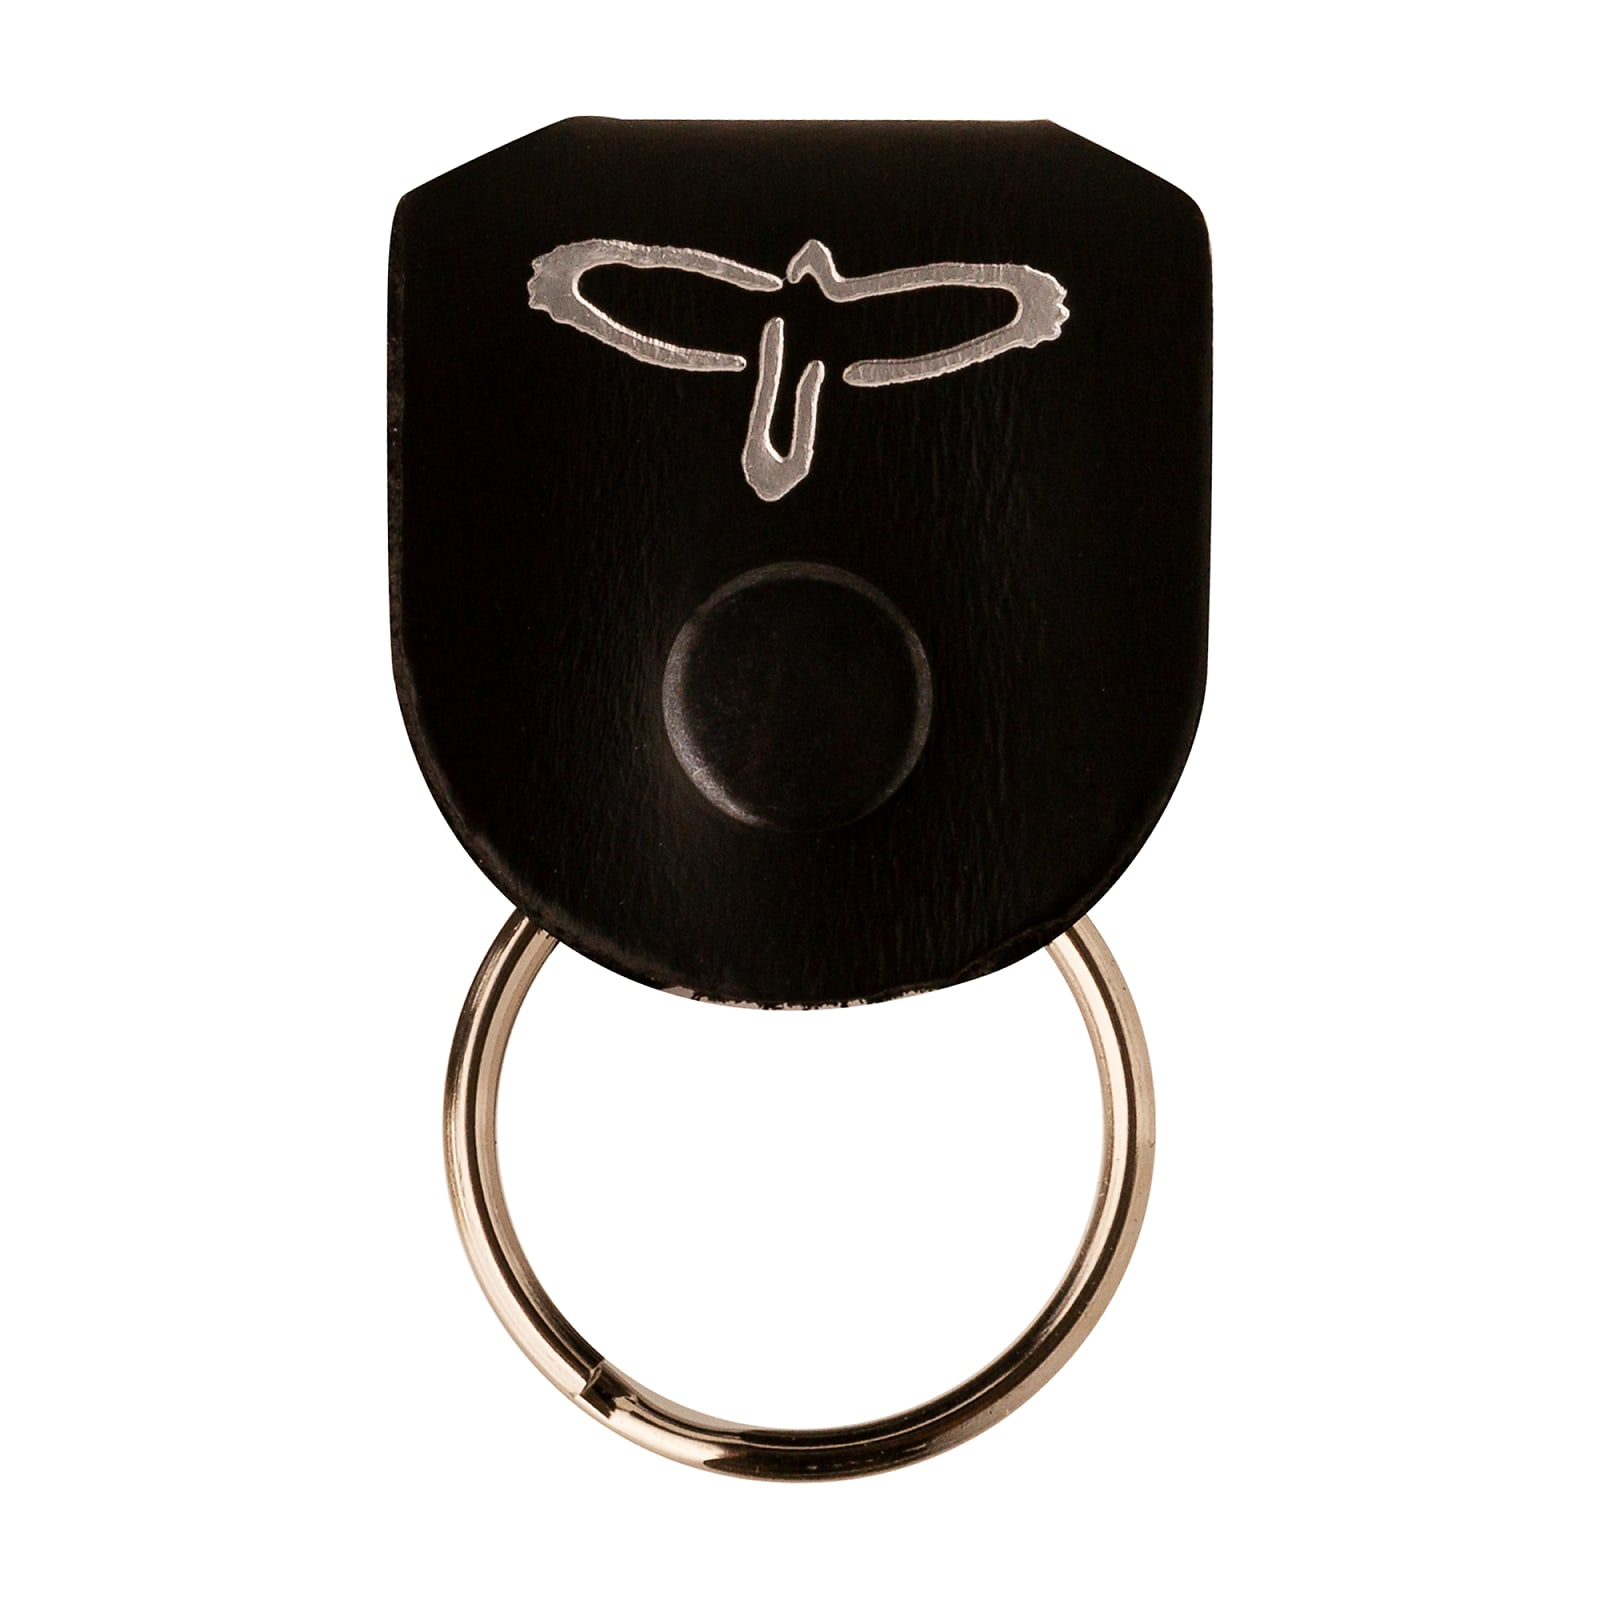 Paul Reed Smith PRS Keychain Leather Key Ring Pick Holder Black / Silver